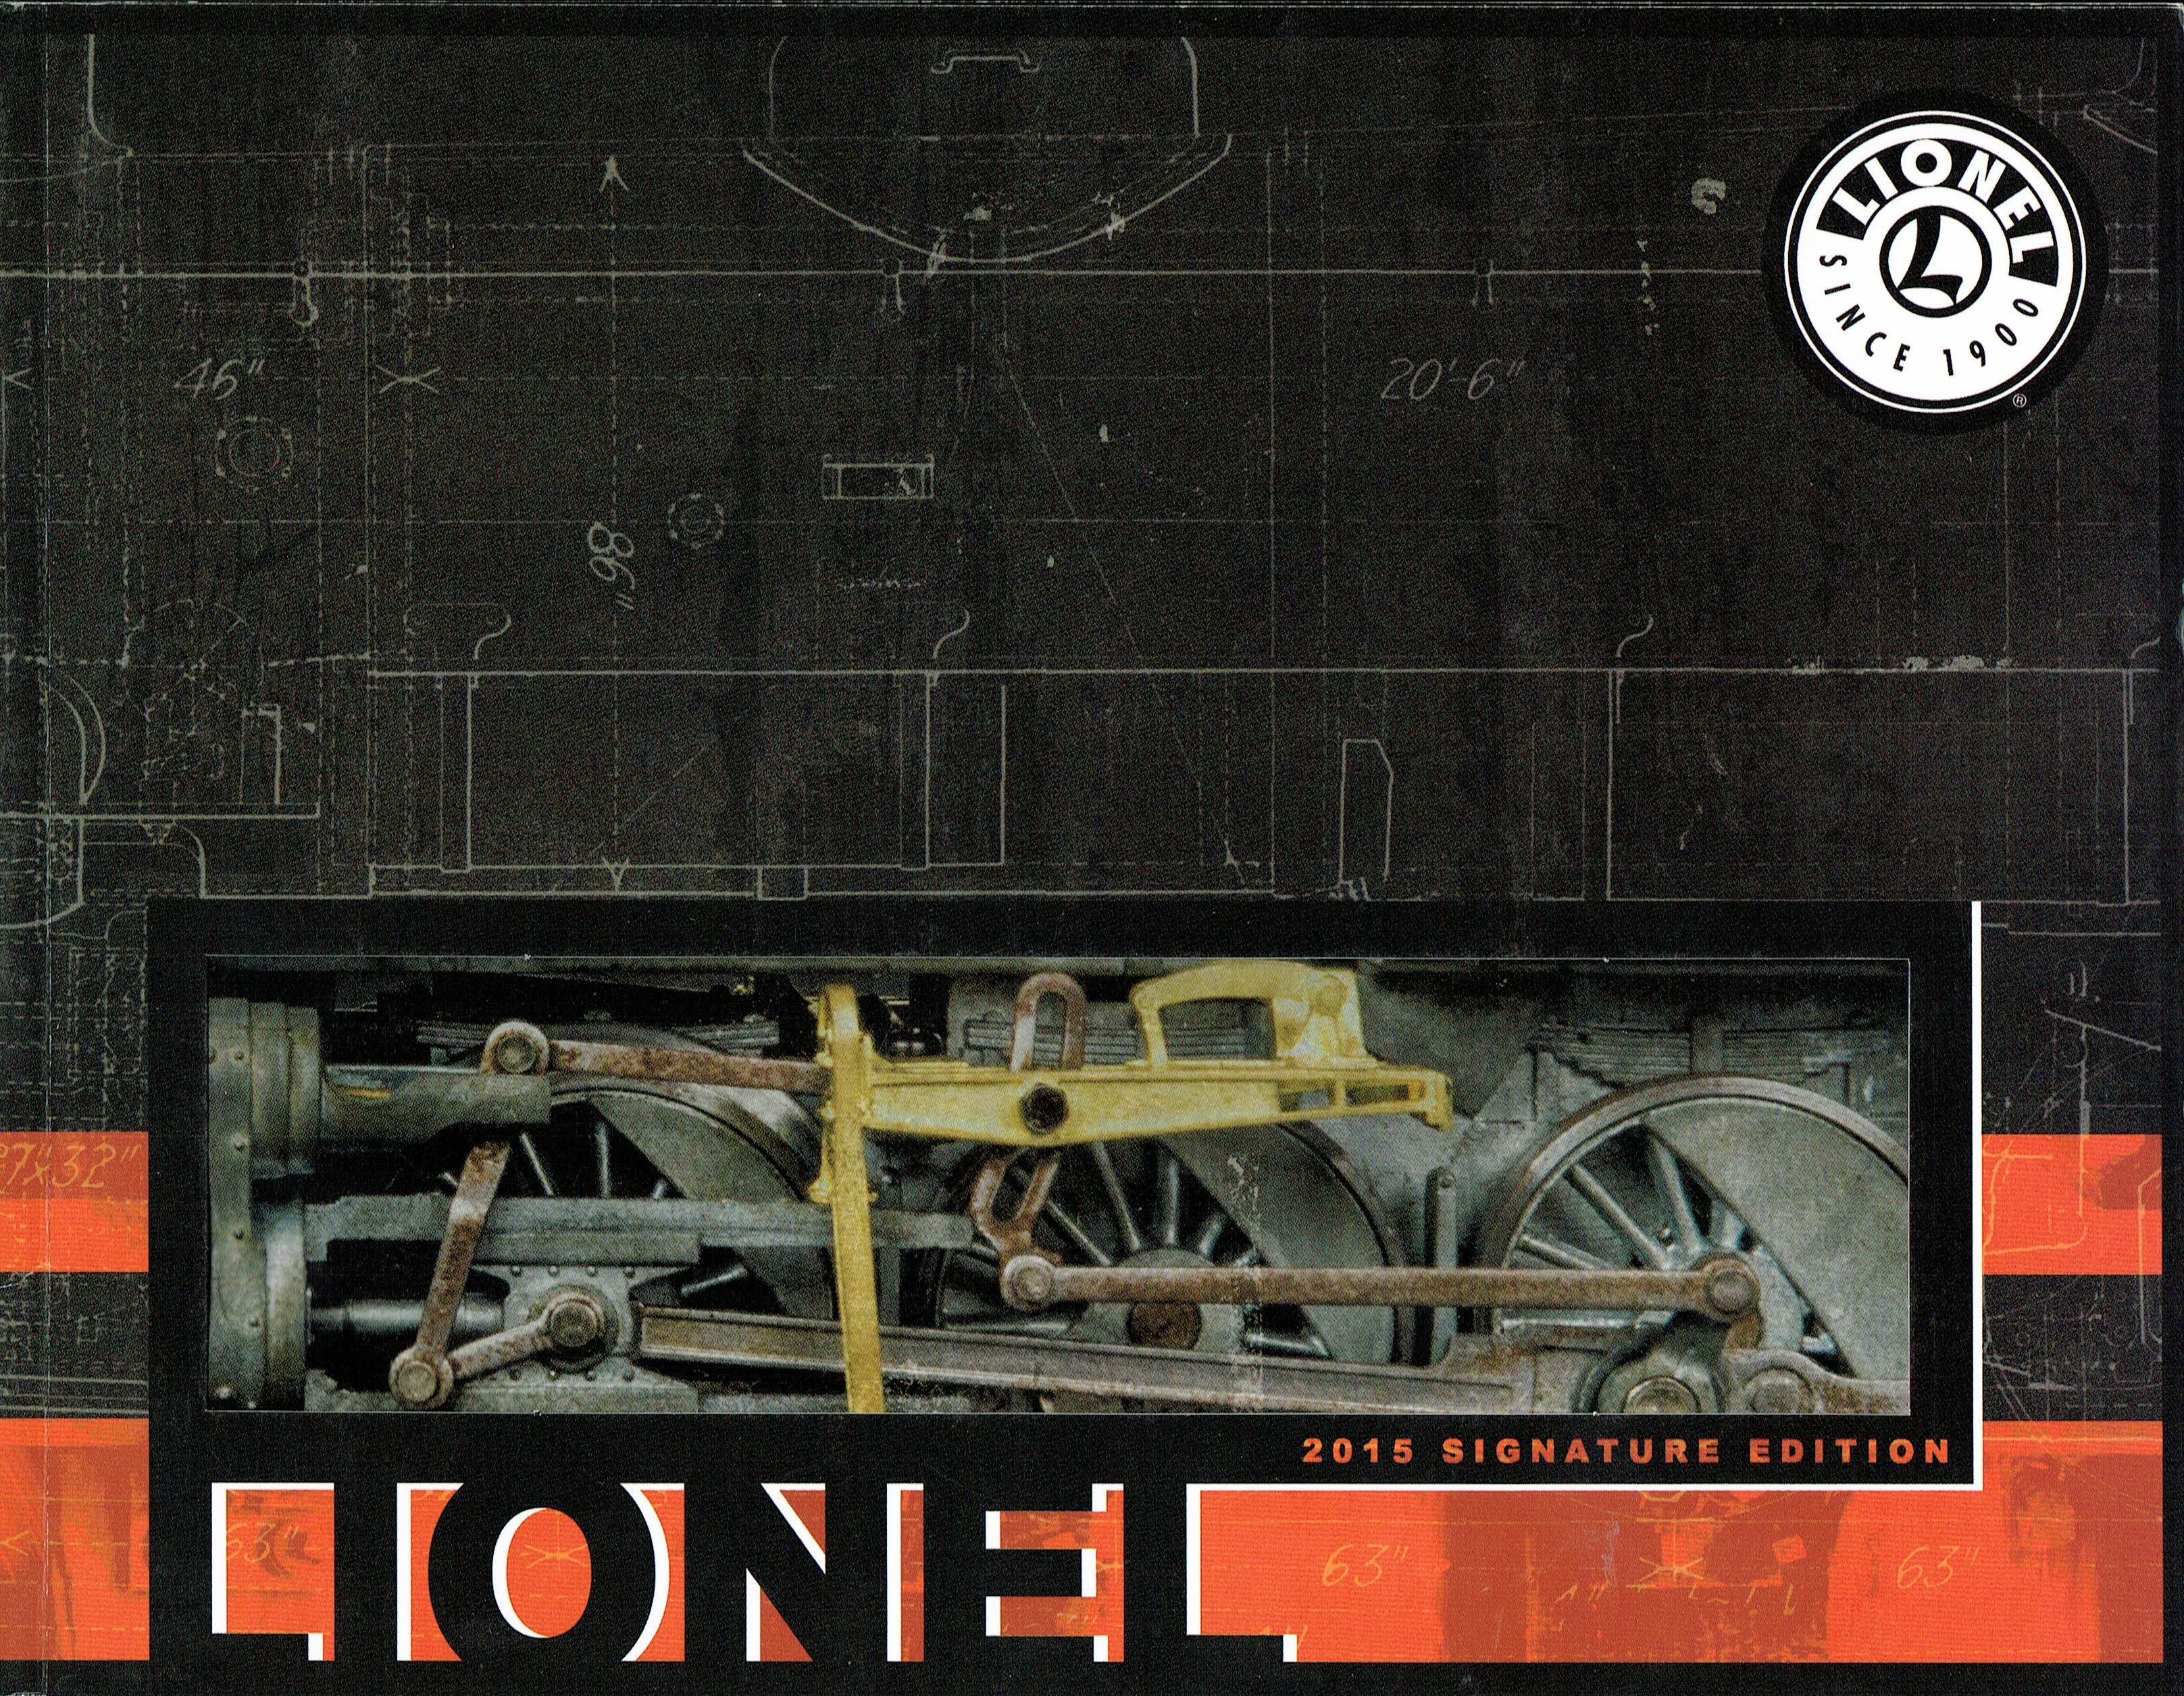 Lionel 2015 Signature Edition Catalog image